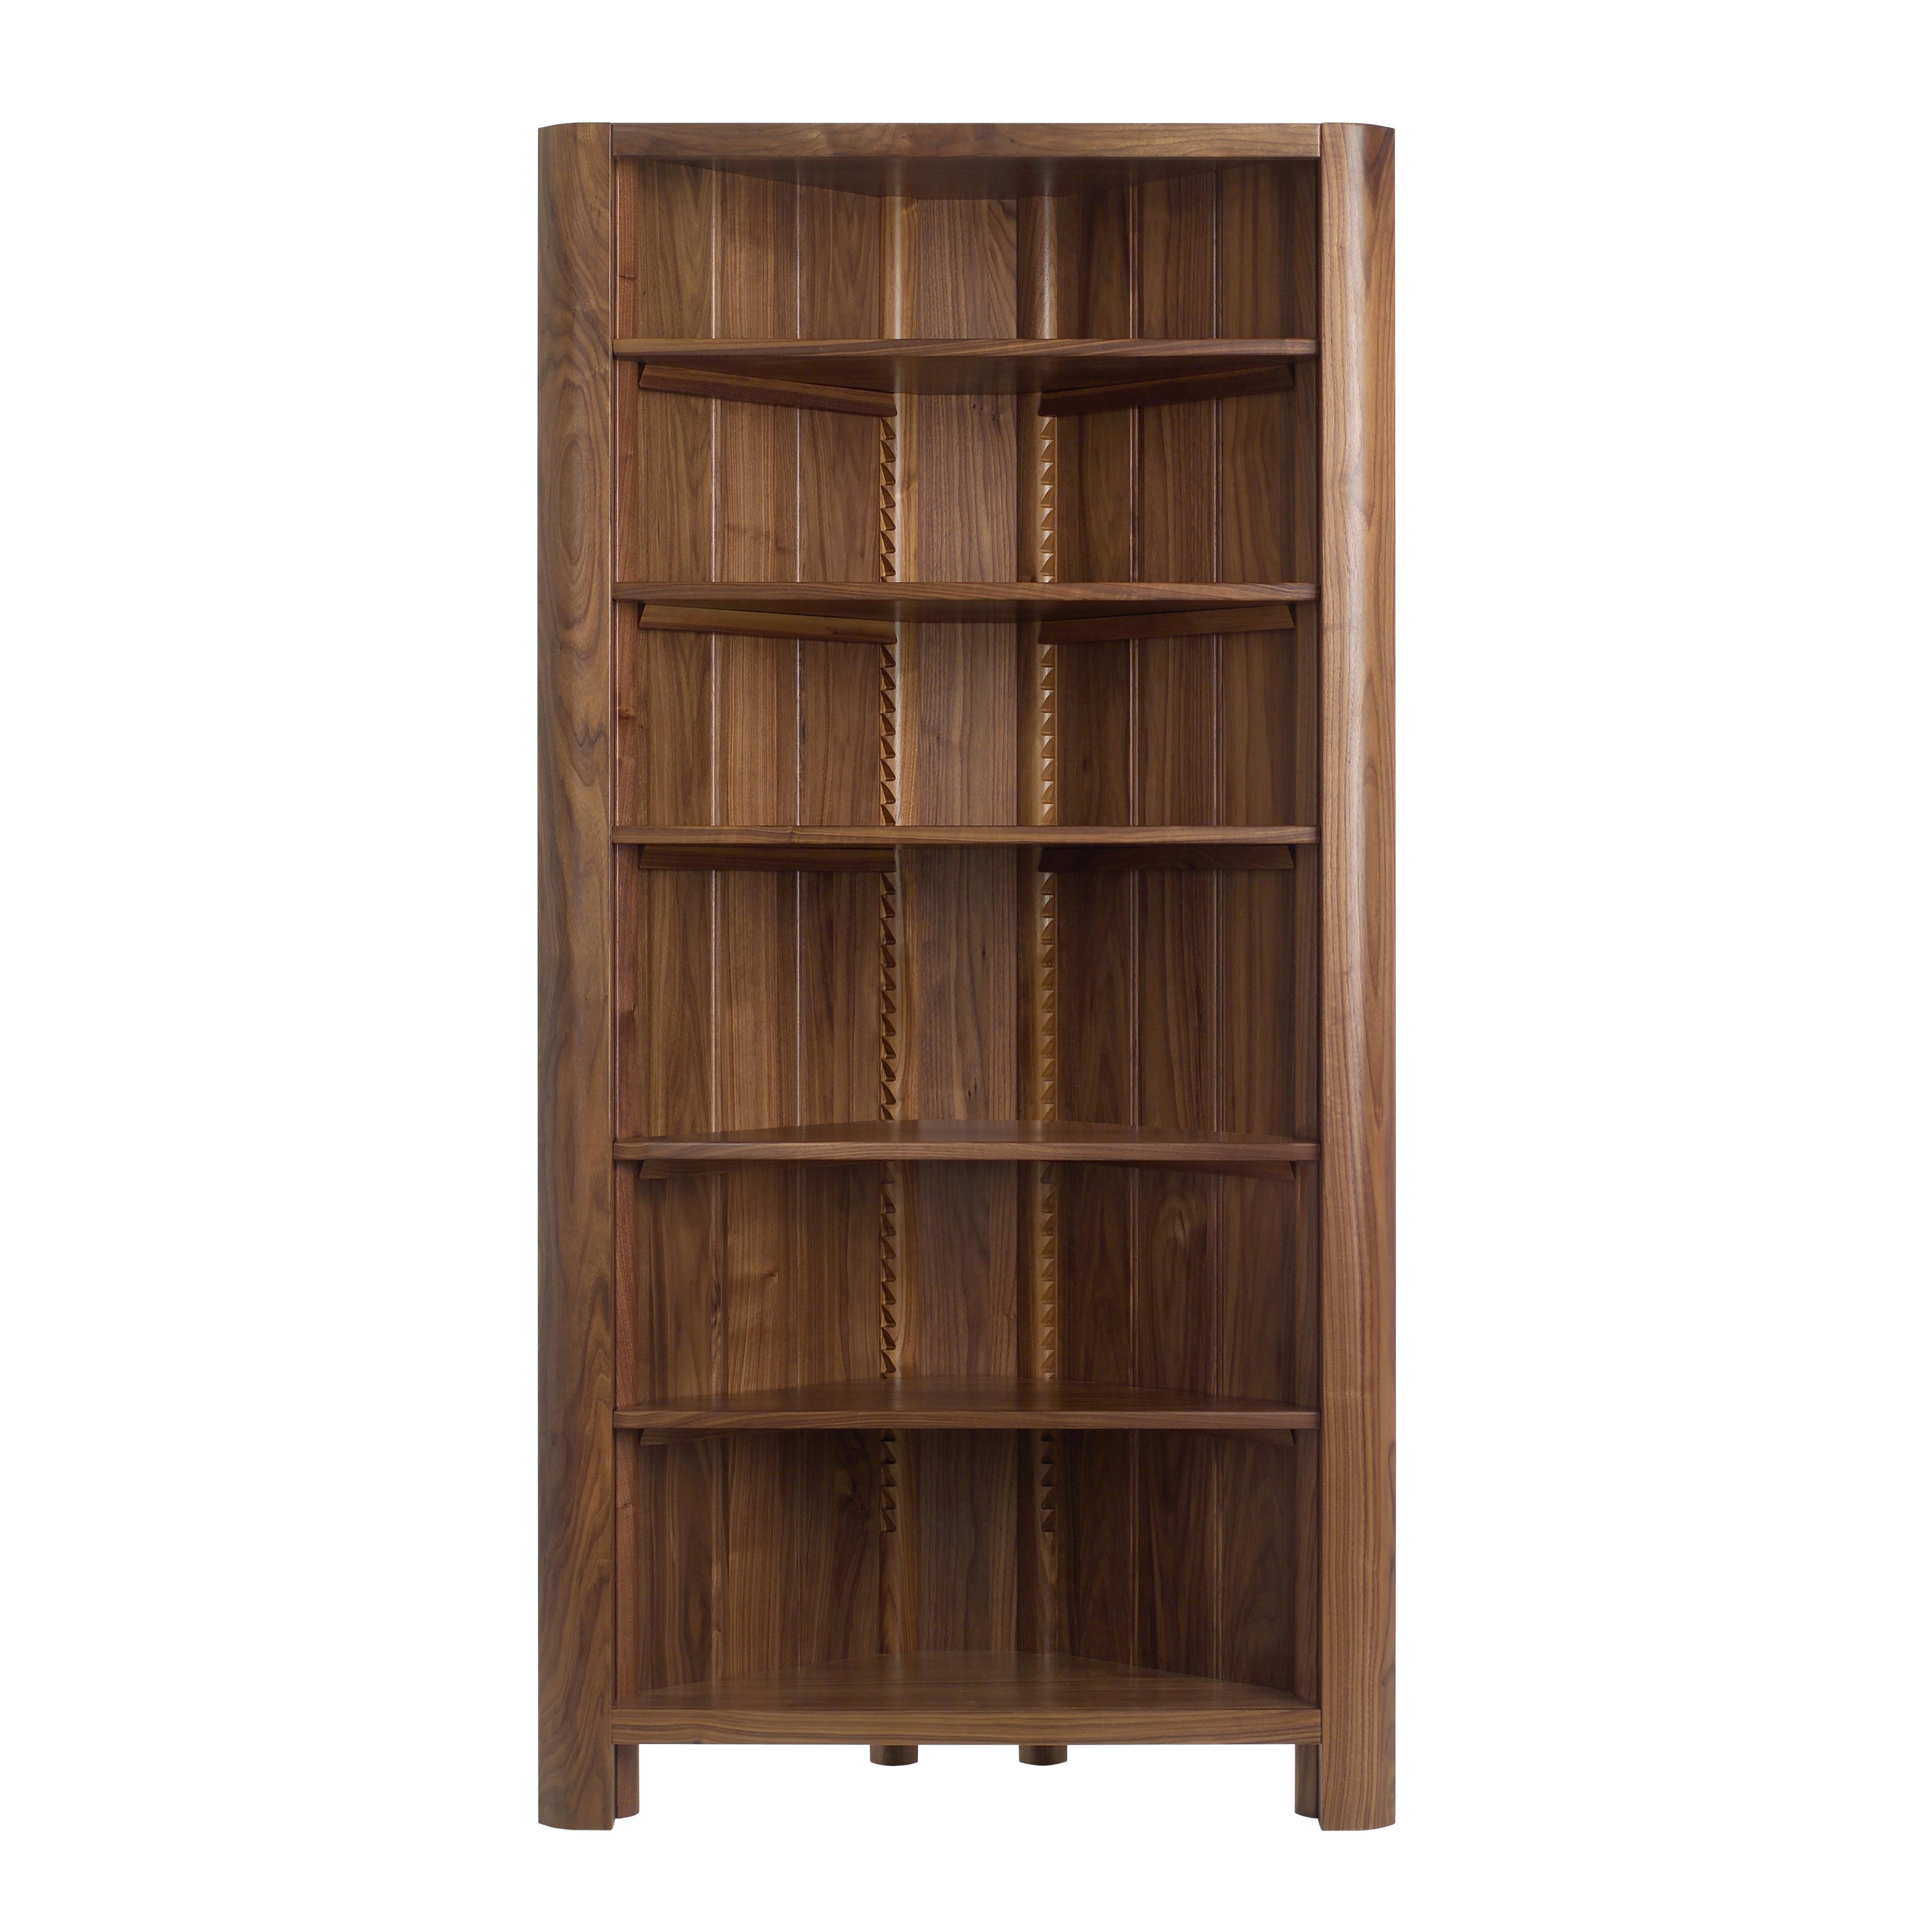 Corner Bookcase White Bookcases Beautiful Photo Ideas Best On Throughout Most Recent Corner Oak Bookcases (View 5 of 15)